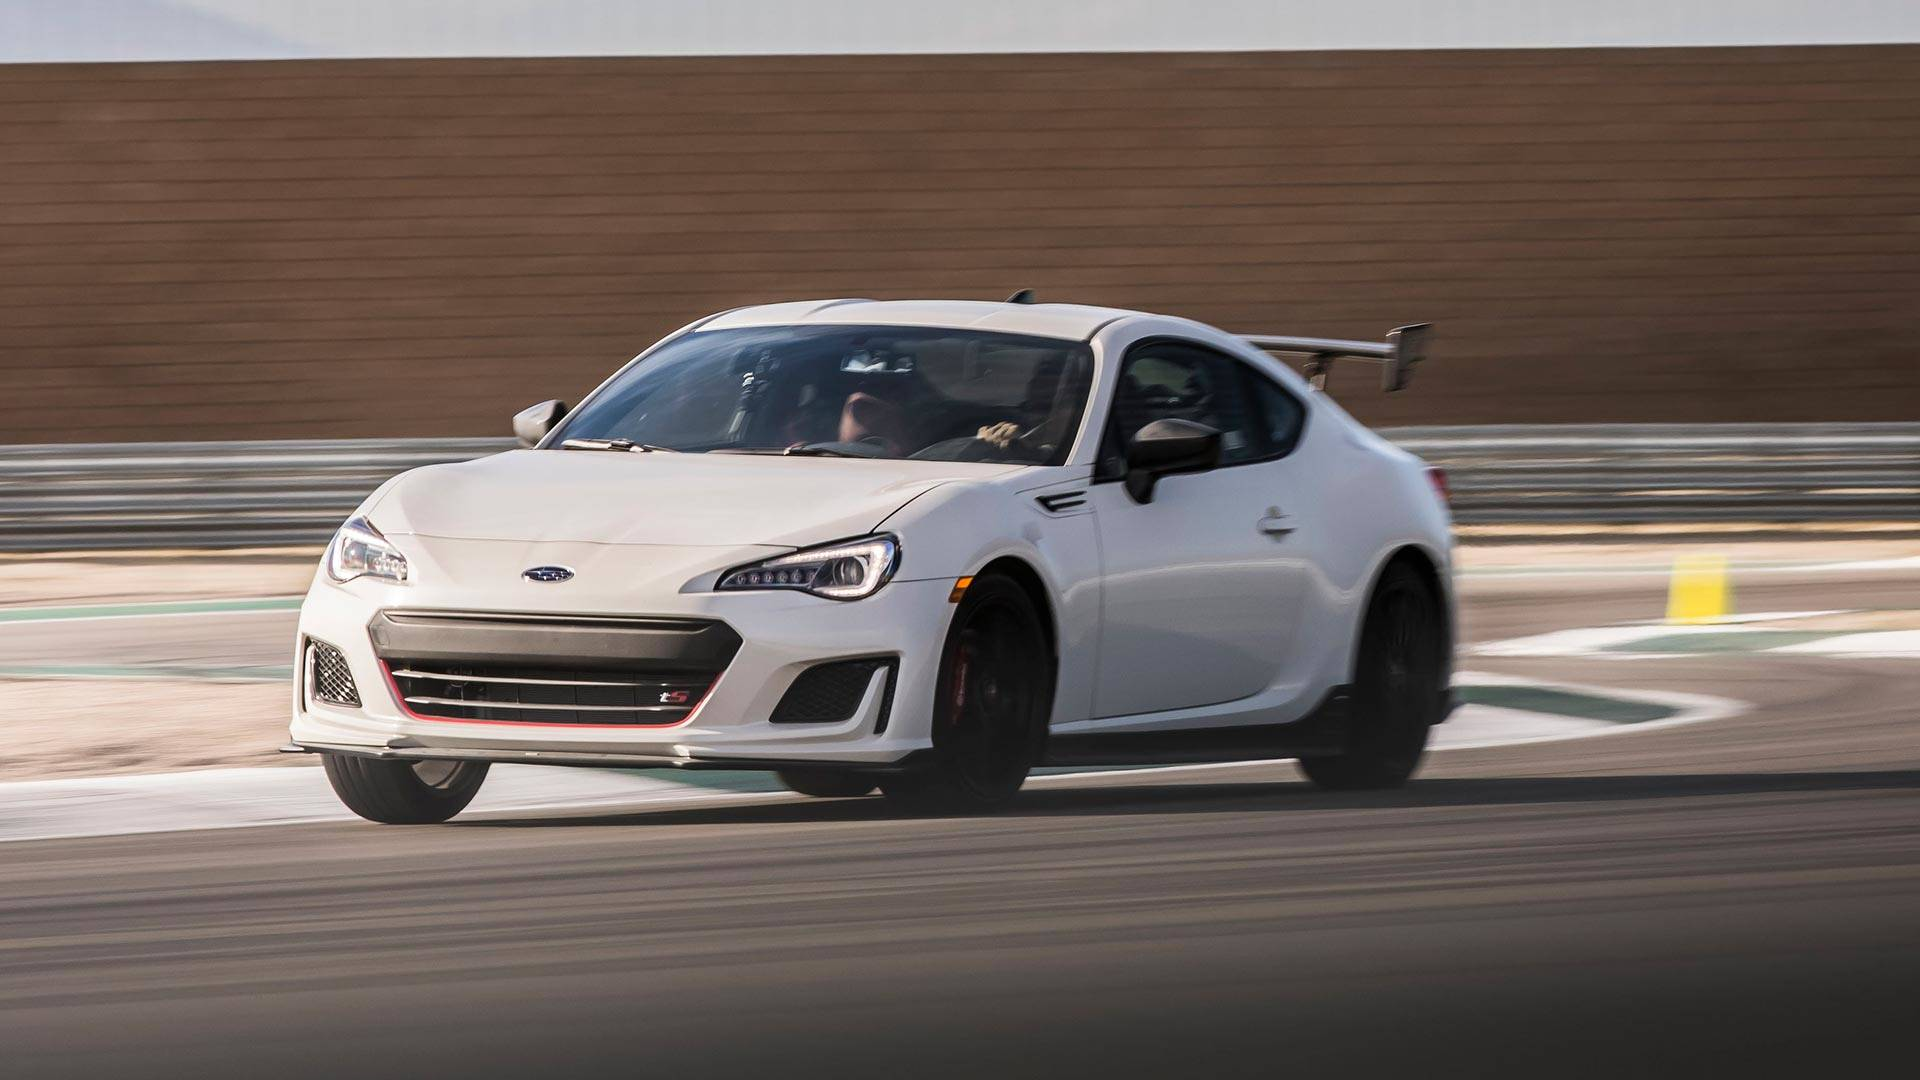 2018 Subaru BRZ tS First Drive: More Than Just A Wing